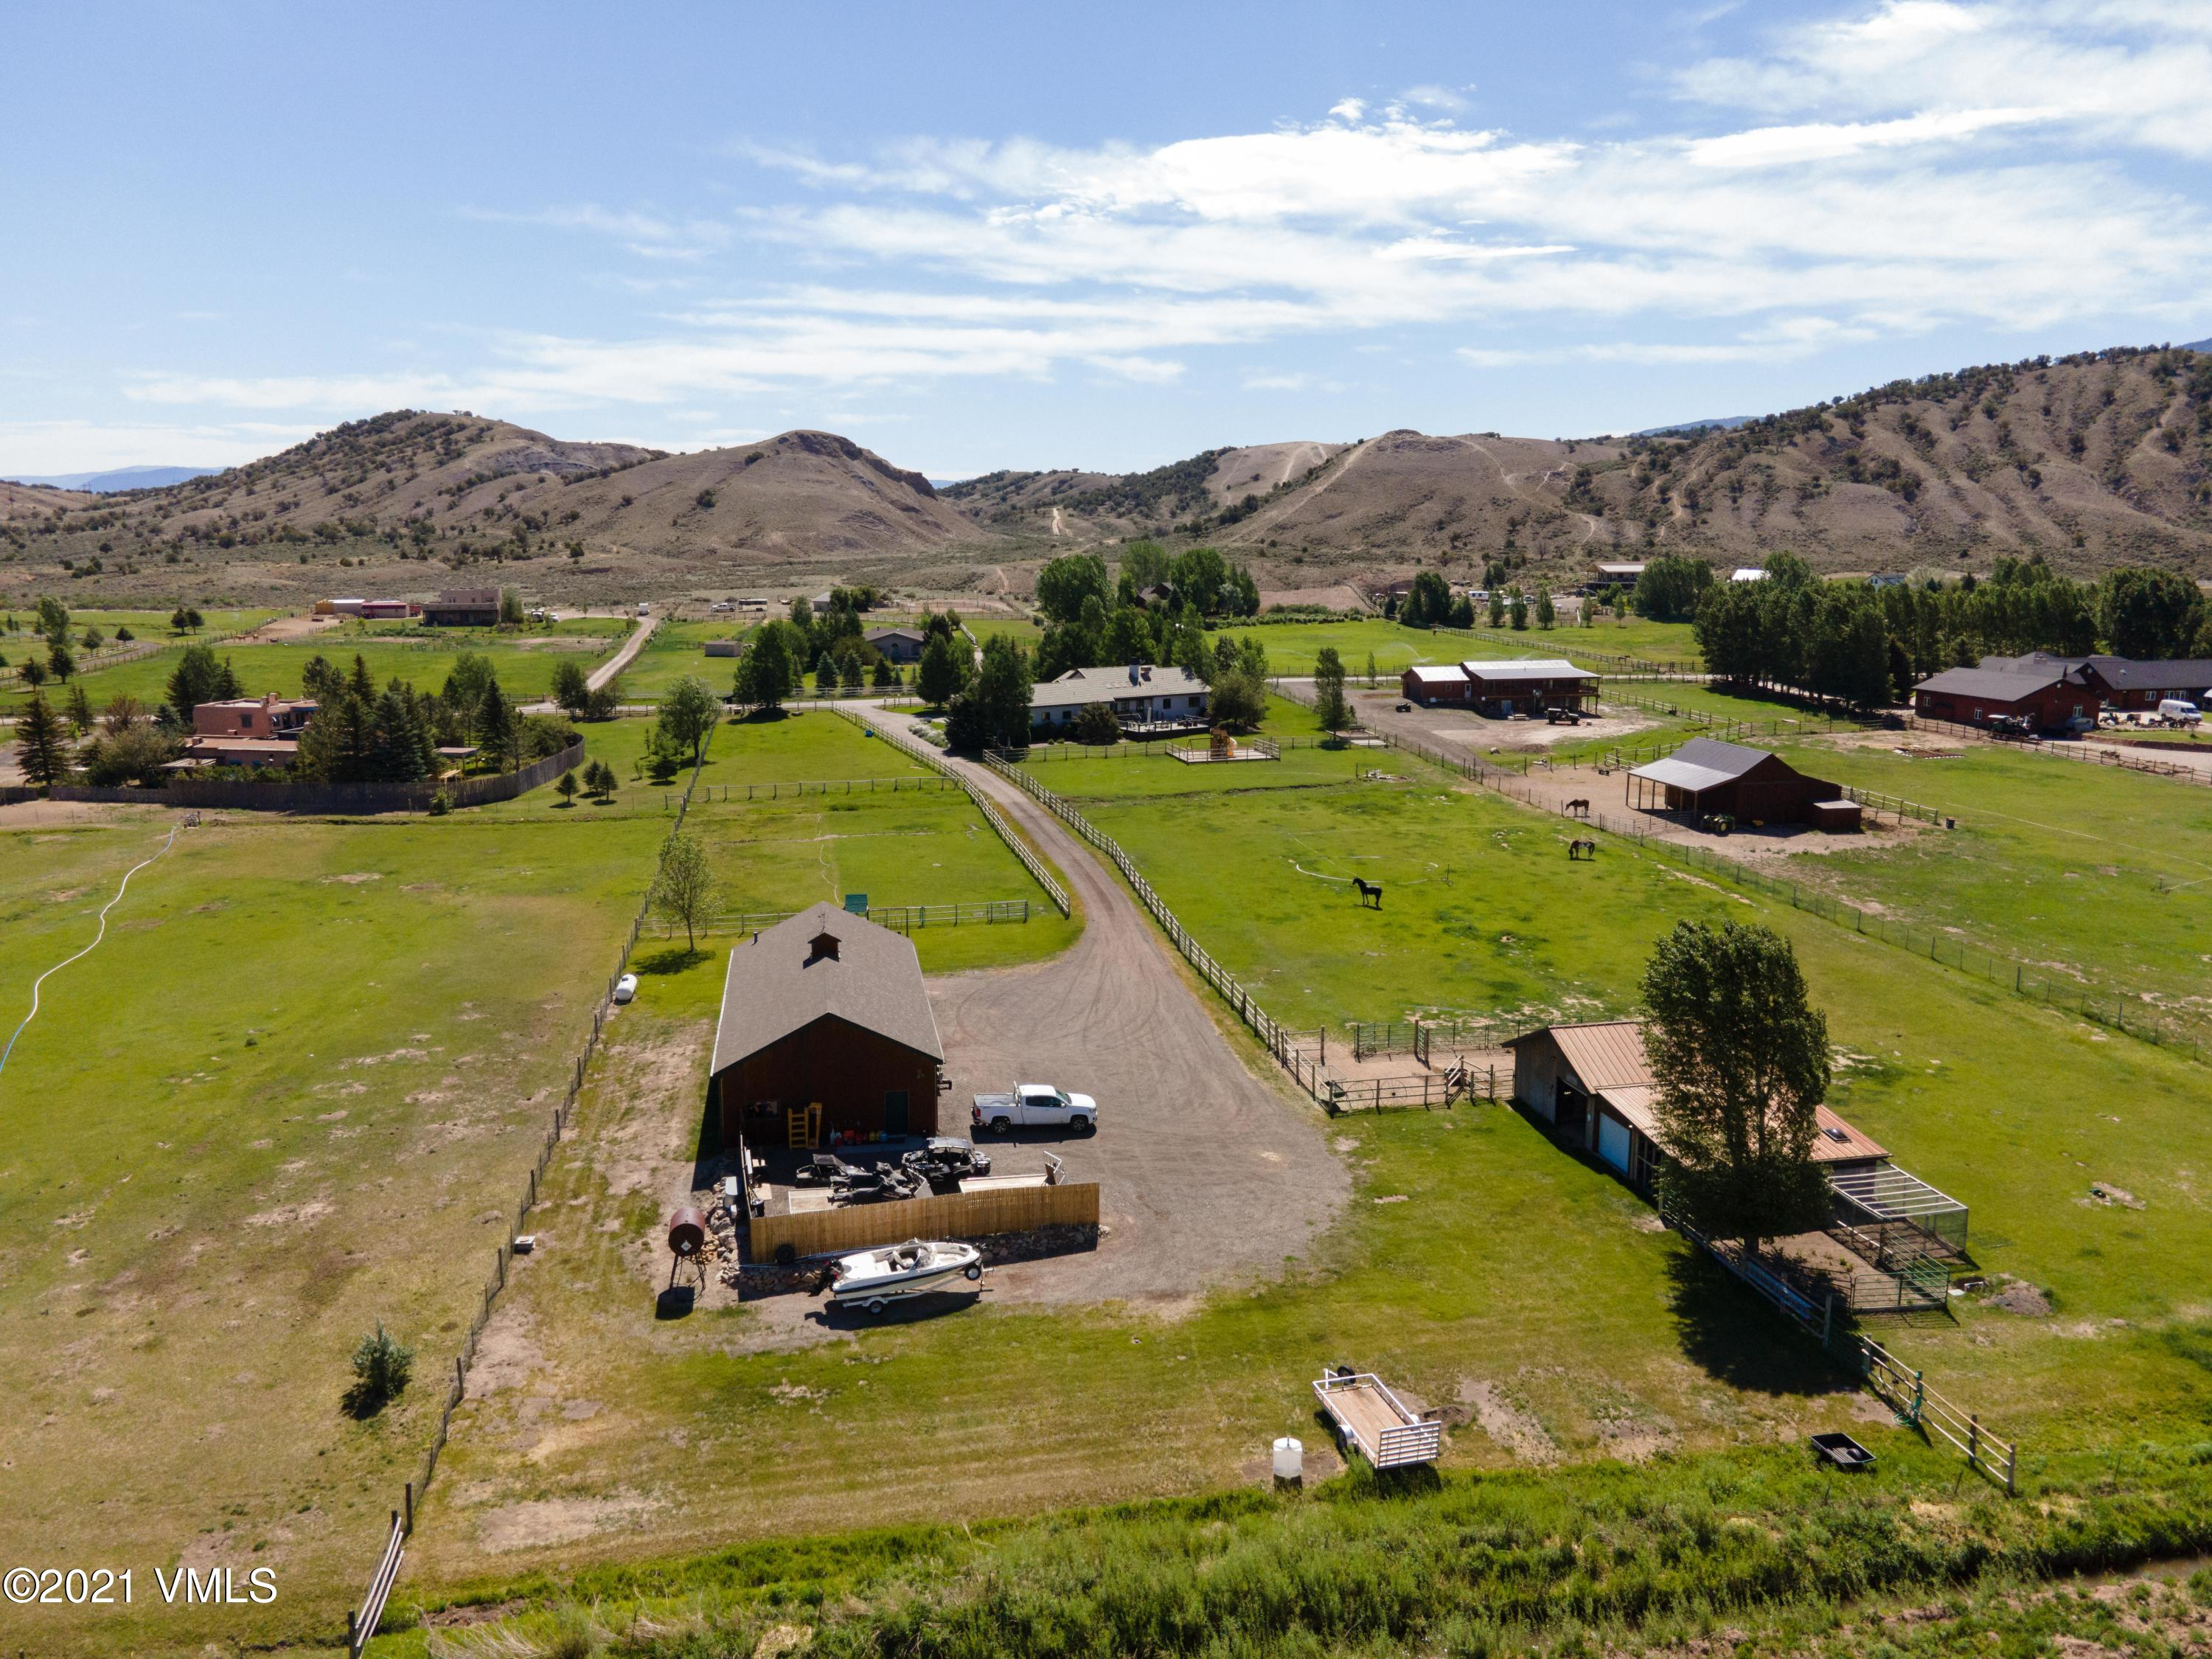 Custom home on 4 acres, Features include 5 bed, 4.5 baths, oversized 3 car garage, 2100 sq.ft. 3-bay shop.  The grounds are meticulously maintained and provide a horse and livestock turn-key opportunity complete with a horse barn with 2 stalls, tack room, chicken coop, fenced and irrigated pastures, deeded water rights.  Beautifully appointed home with high end appliances and finishes, main floor master, maintenance free exterior, in-floor radiant heat and air conditioning. The large deck and backyard are an entertaining paradise with incredible southerly mountain views.   Low maintenance stucco exterior and lifetime roof.